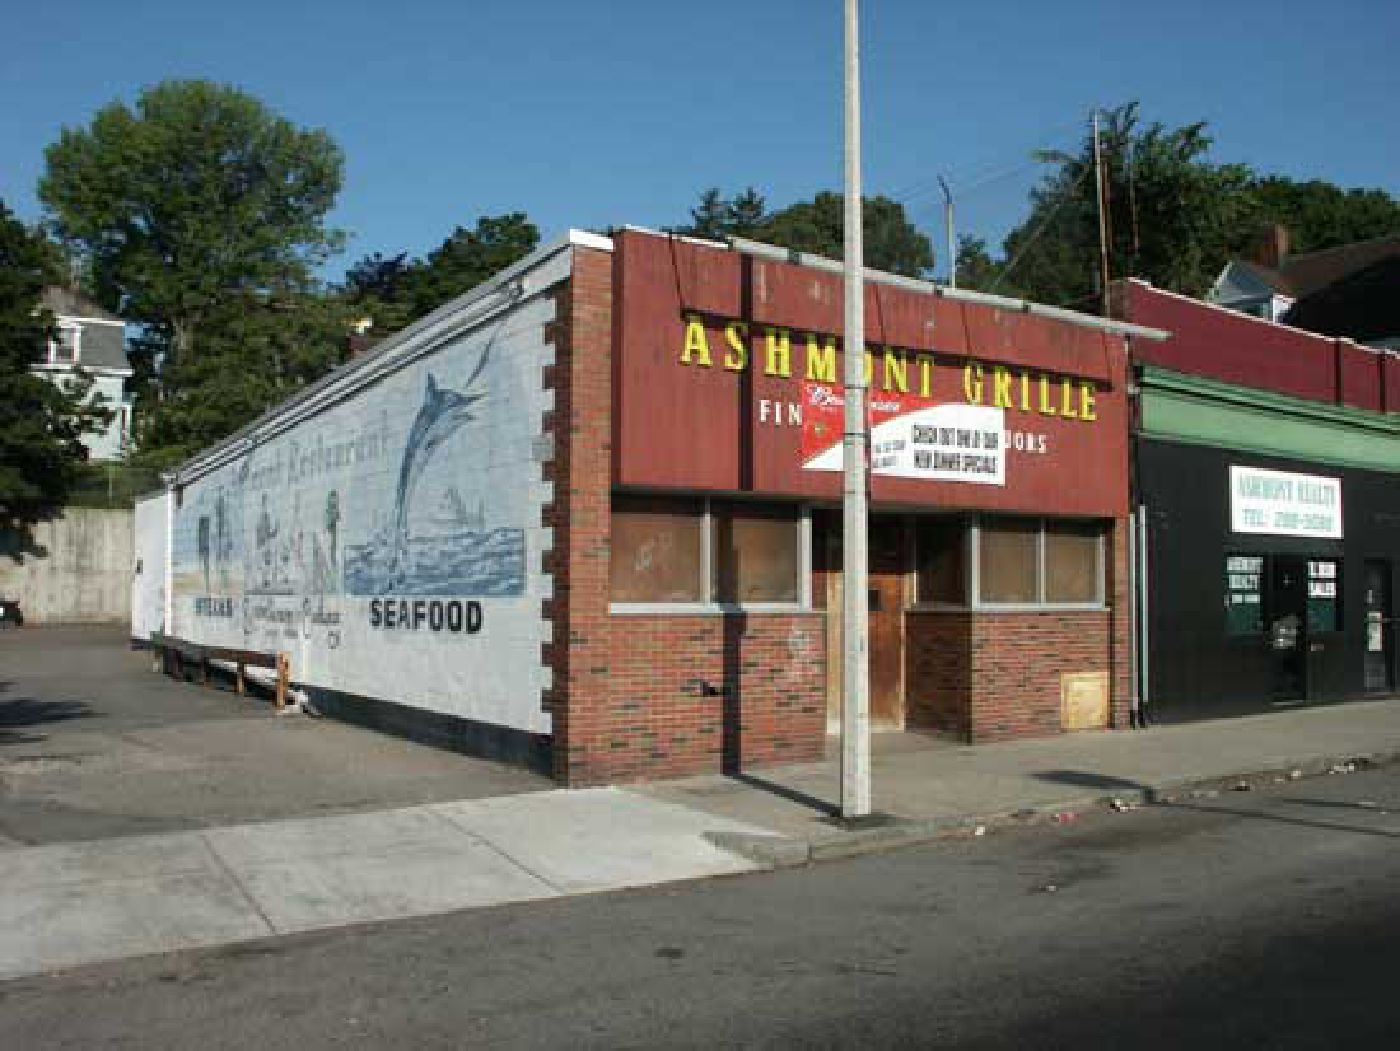 Ashmont Grille,  Summer 2002